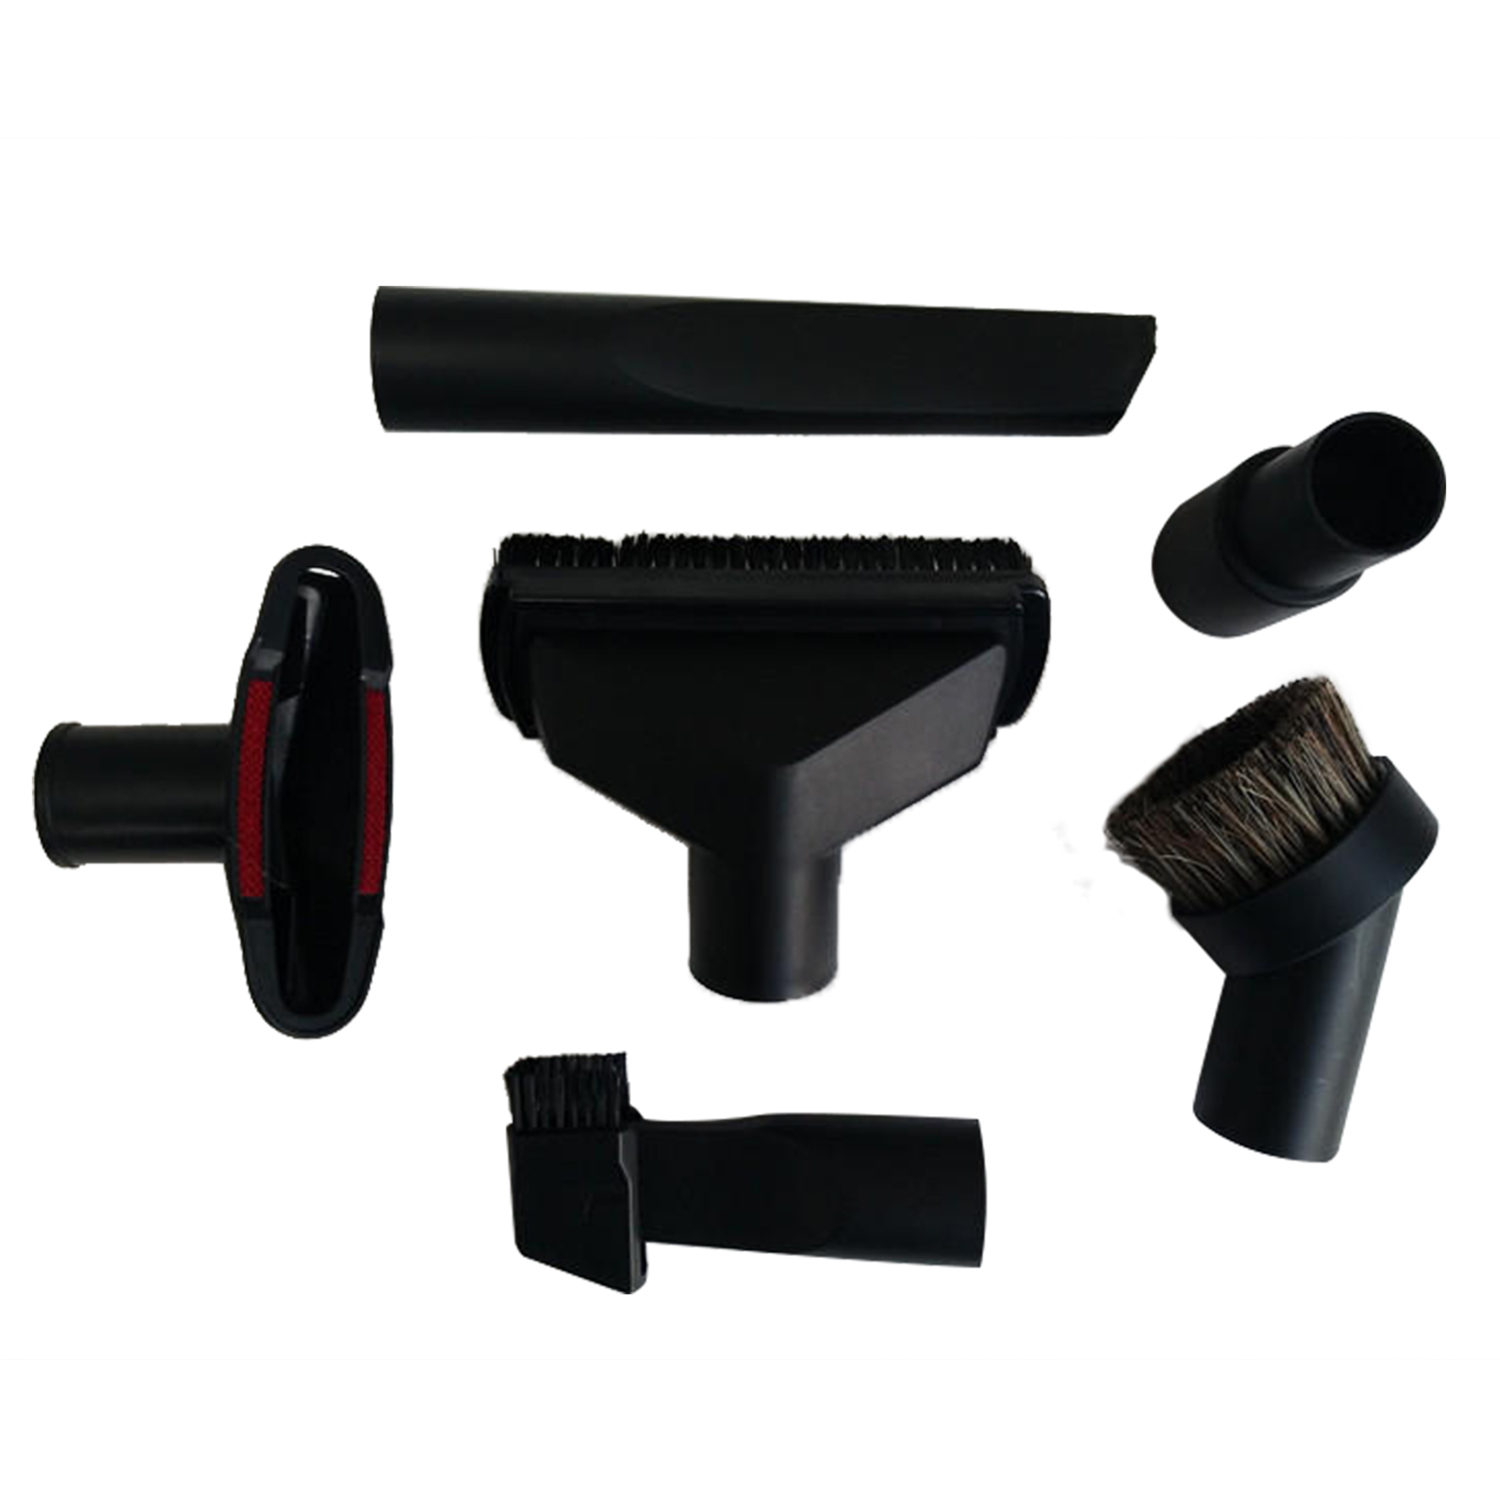 Universal Vacuum Cleaner Accessories Cleaning Kit Brush Nozzle Crevice Tool for 32mm& 35mm Standard Hose 6pcsUniversal Vacuum Cleaner Accessories Cleaning Kit Brush Nozzle Crevice Tool for 32mm& 35mm Standard Hose 6pcs